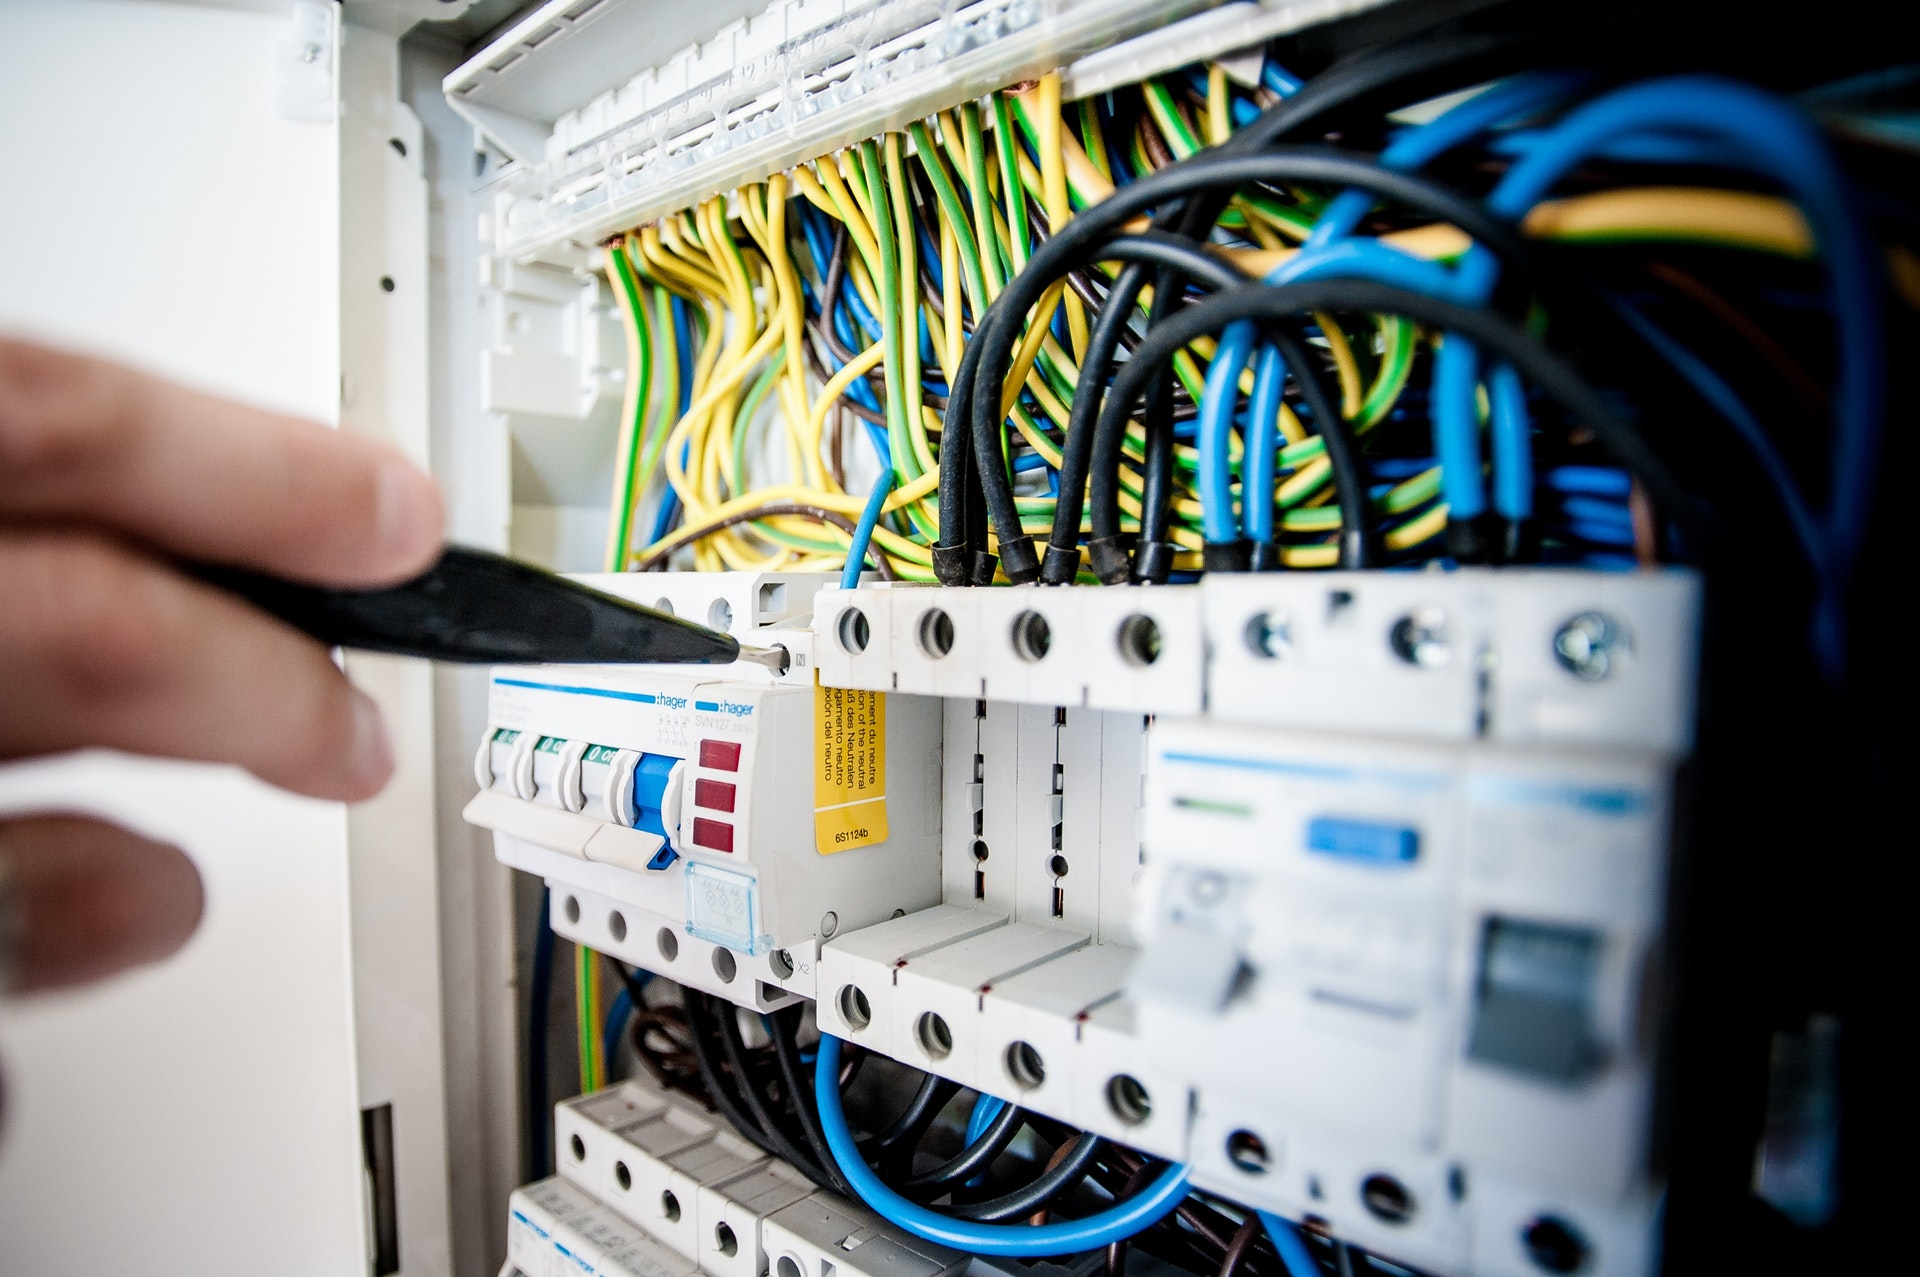 cables-close-up-connection-257736